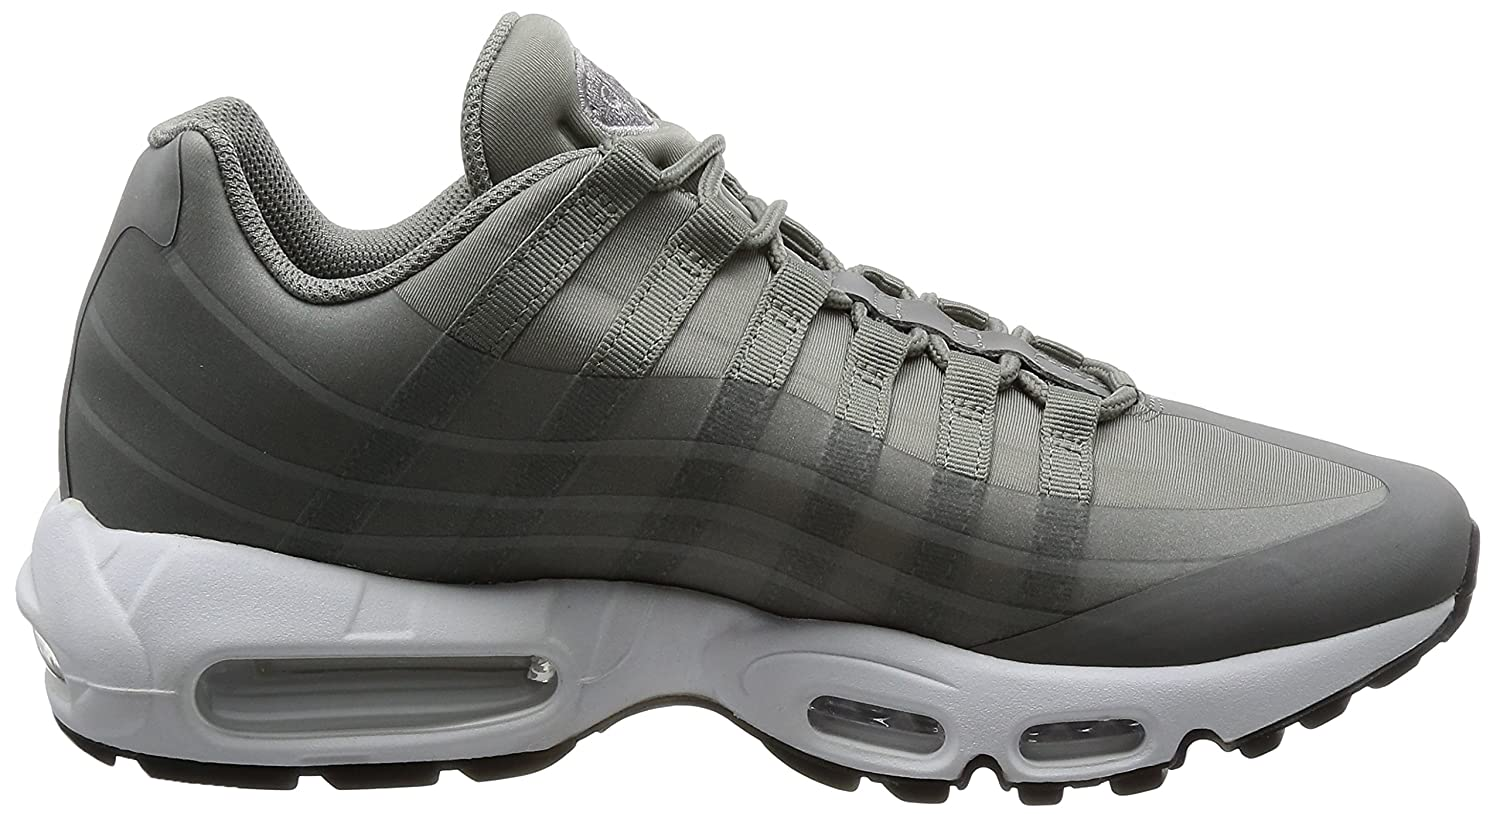 Nike Air Max 95 NS GPX SP Running Shoes Obsidian White Men's